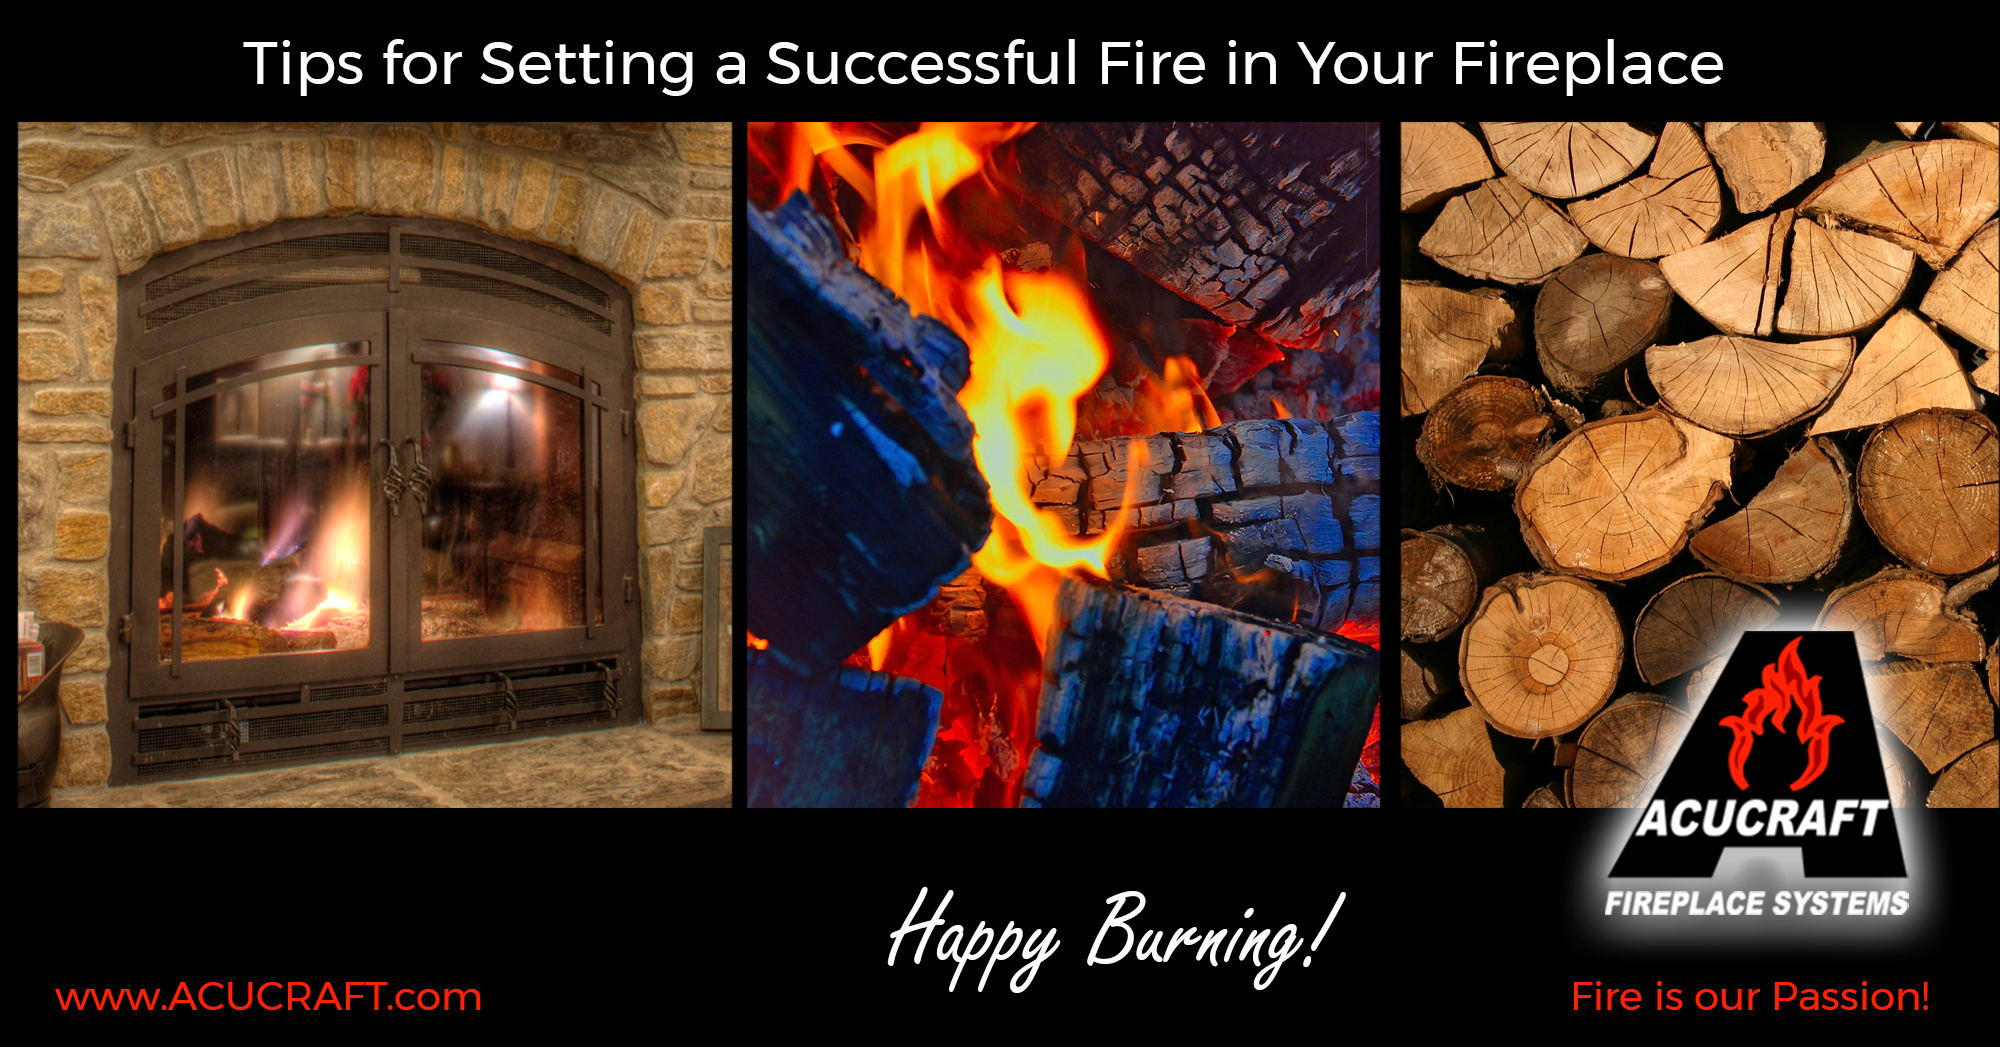 Tips for Setting a Successful Fire in Your Fireplace